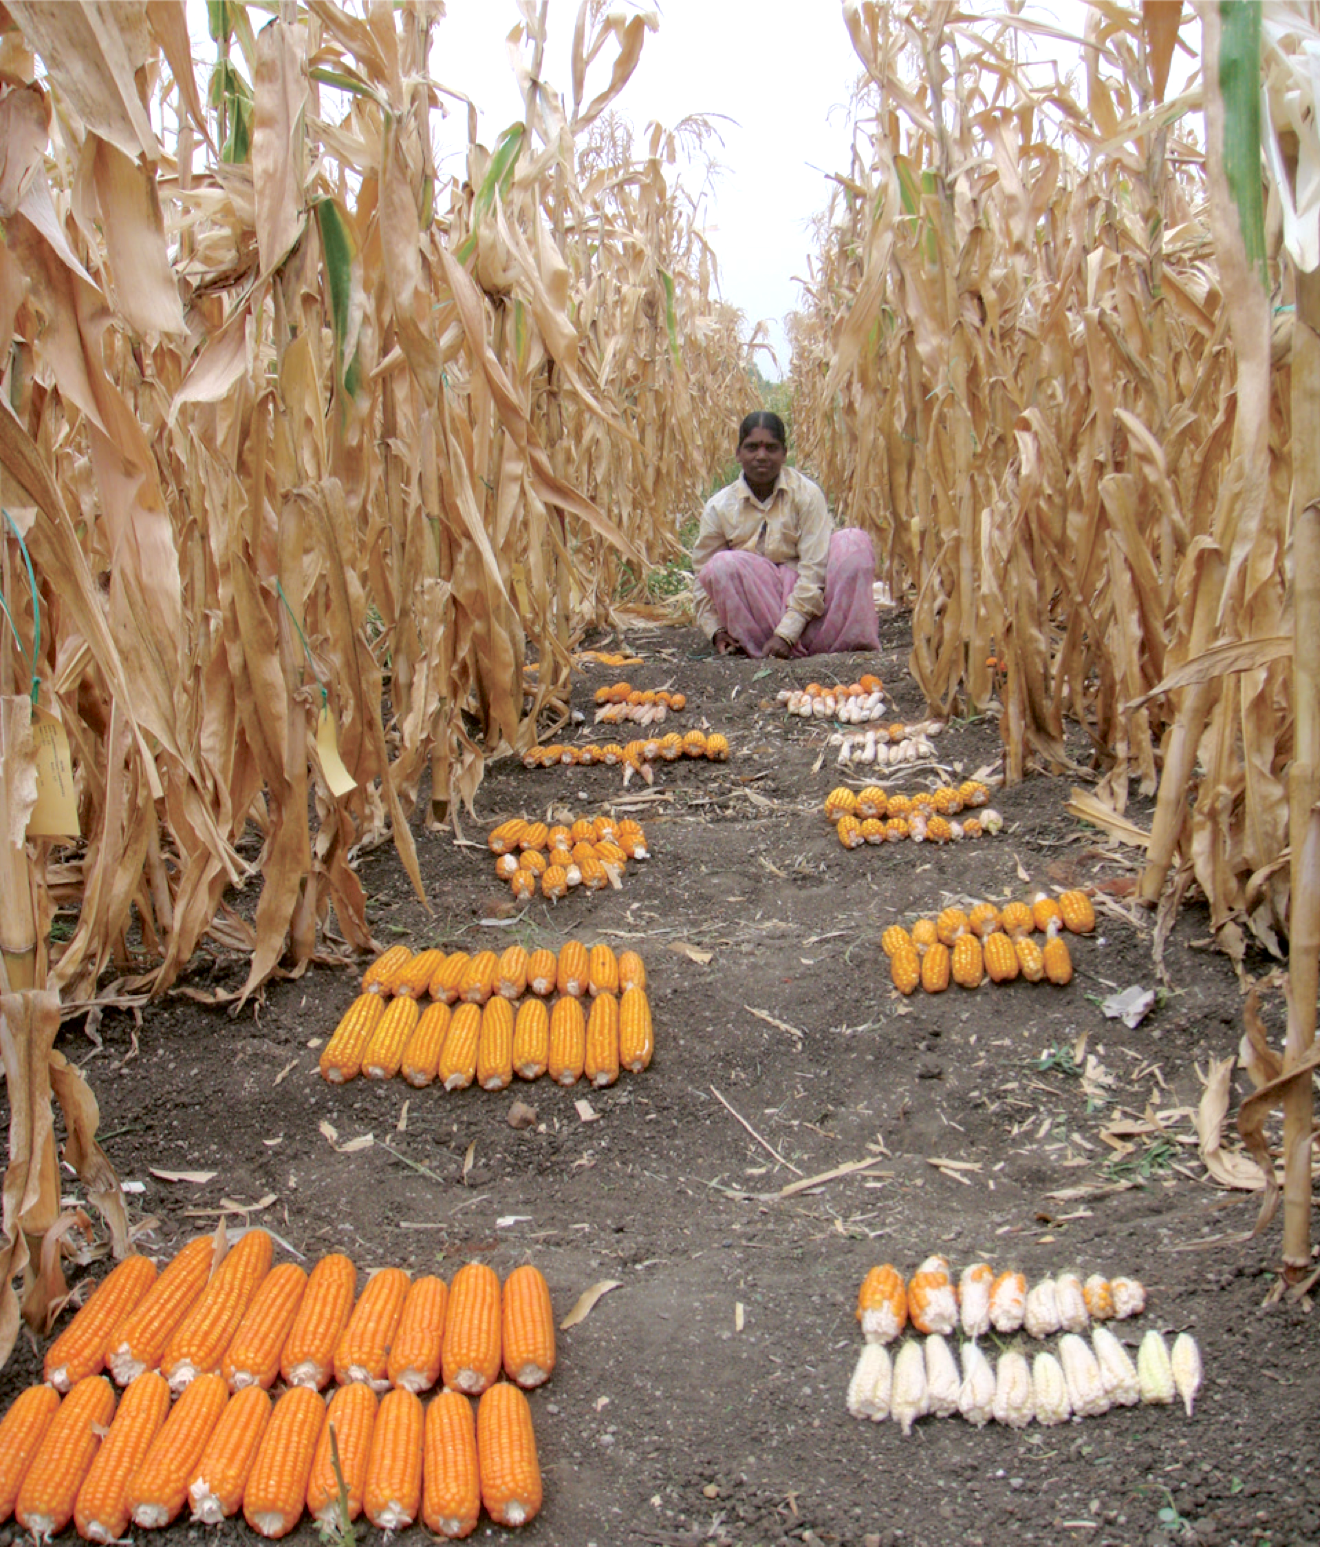 Variability among maize genotypes for agronomic and yield traits under managed drought stress. (Photo: CIMMYT)